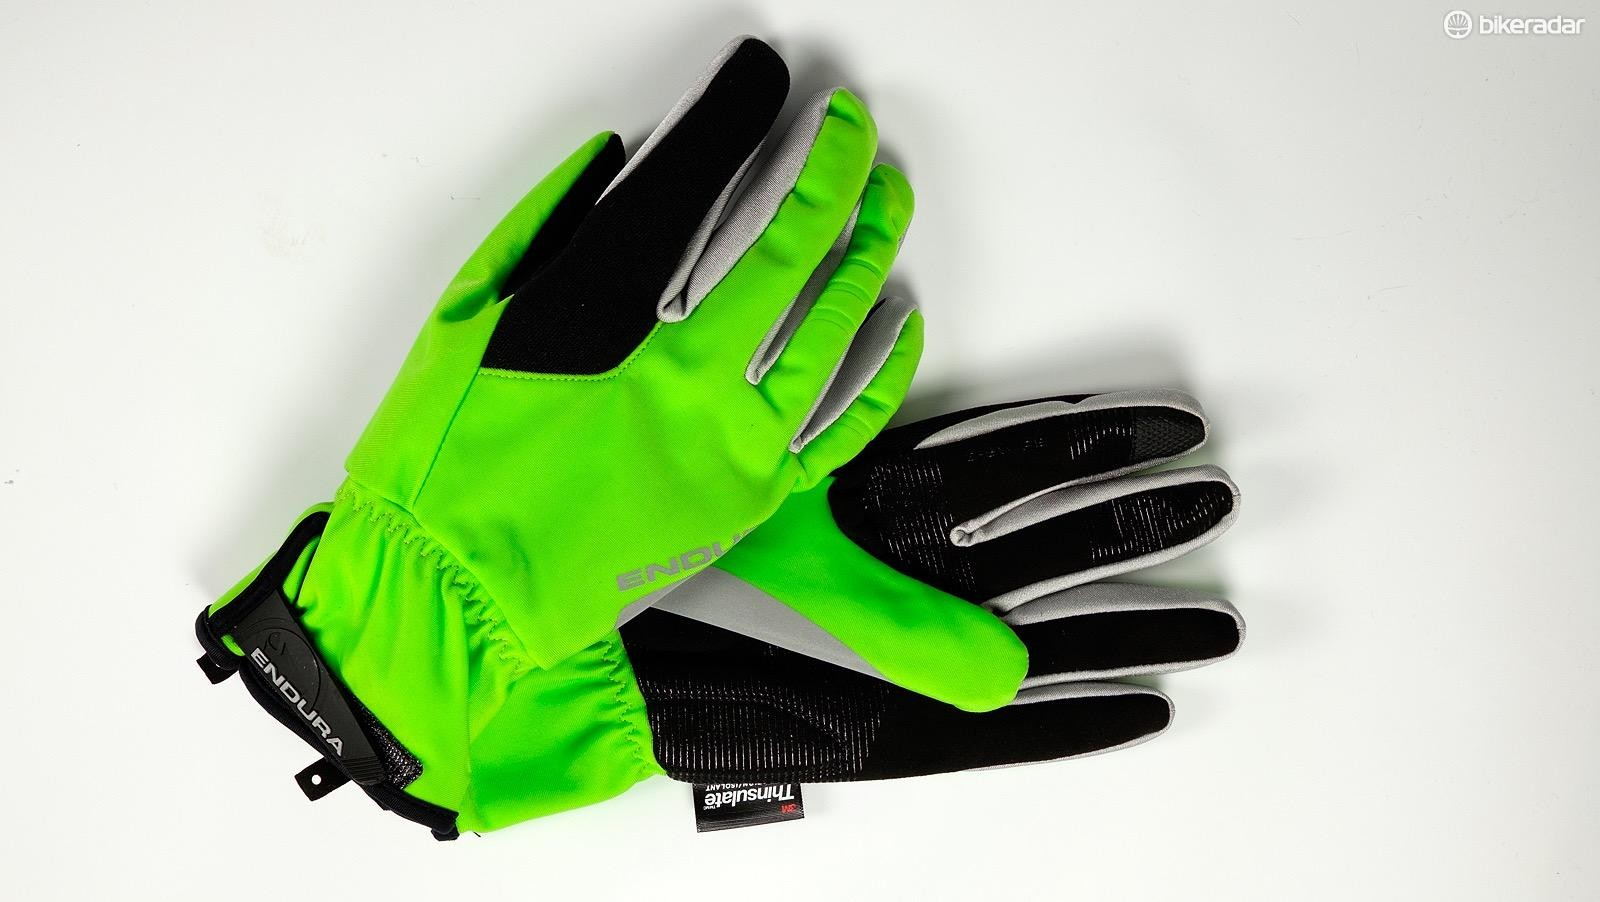 gloves-5-of-6-1510591369545-1dpxj7mhsucdm-7474a4a